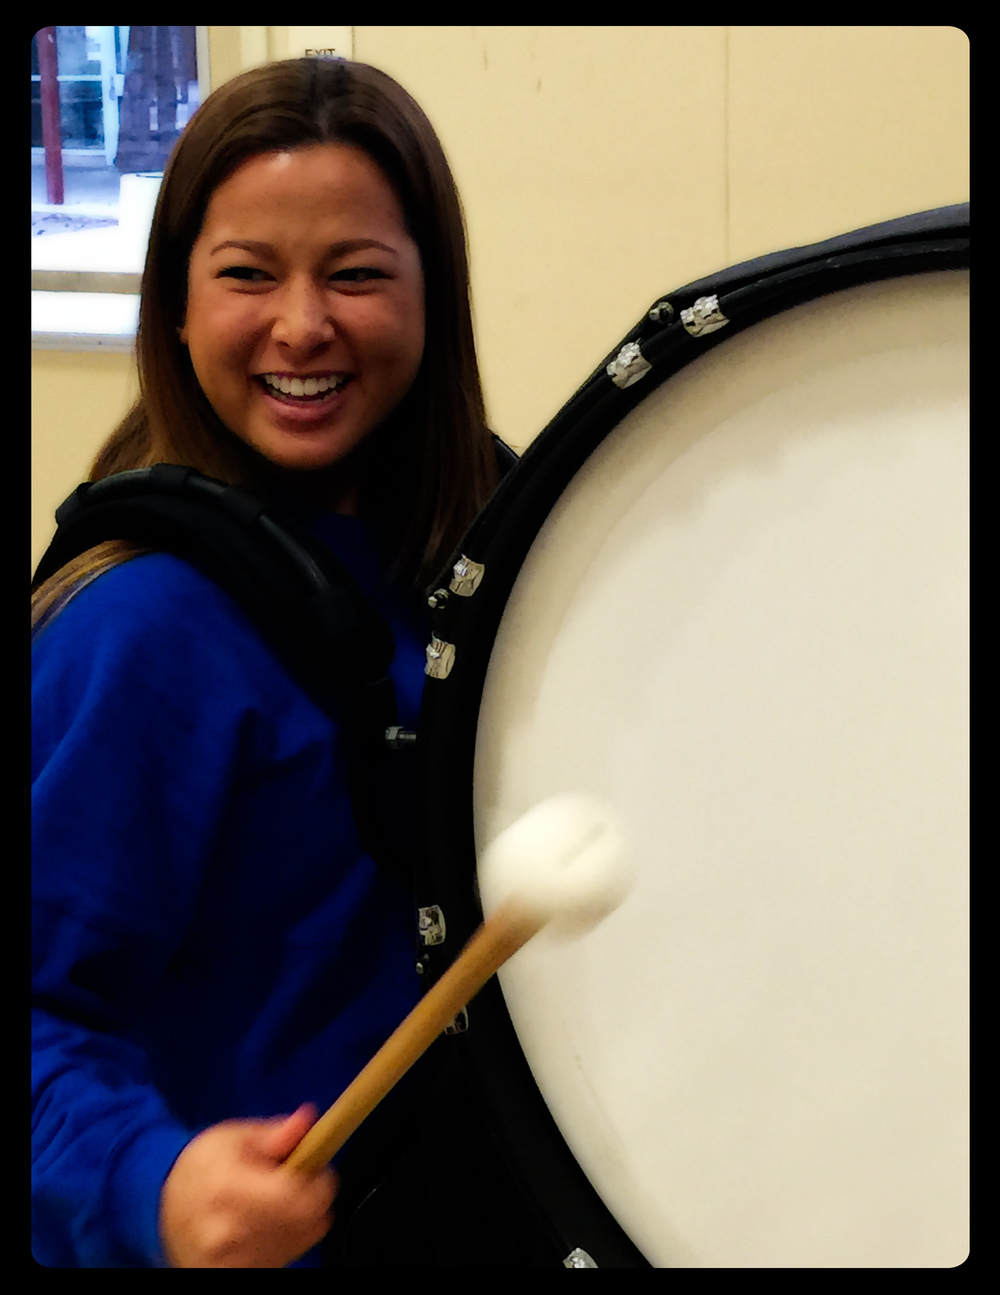 Jaclyn from Santa Clara University dons the bass drum to better understand the perspective of the TPerc performers.